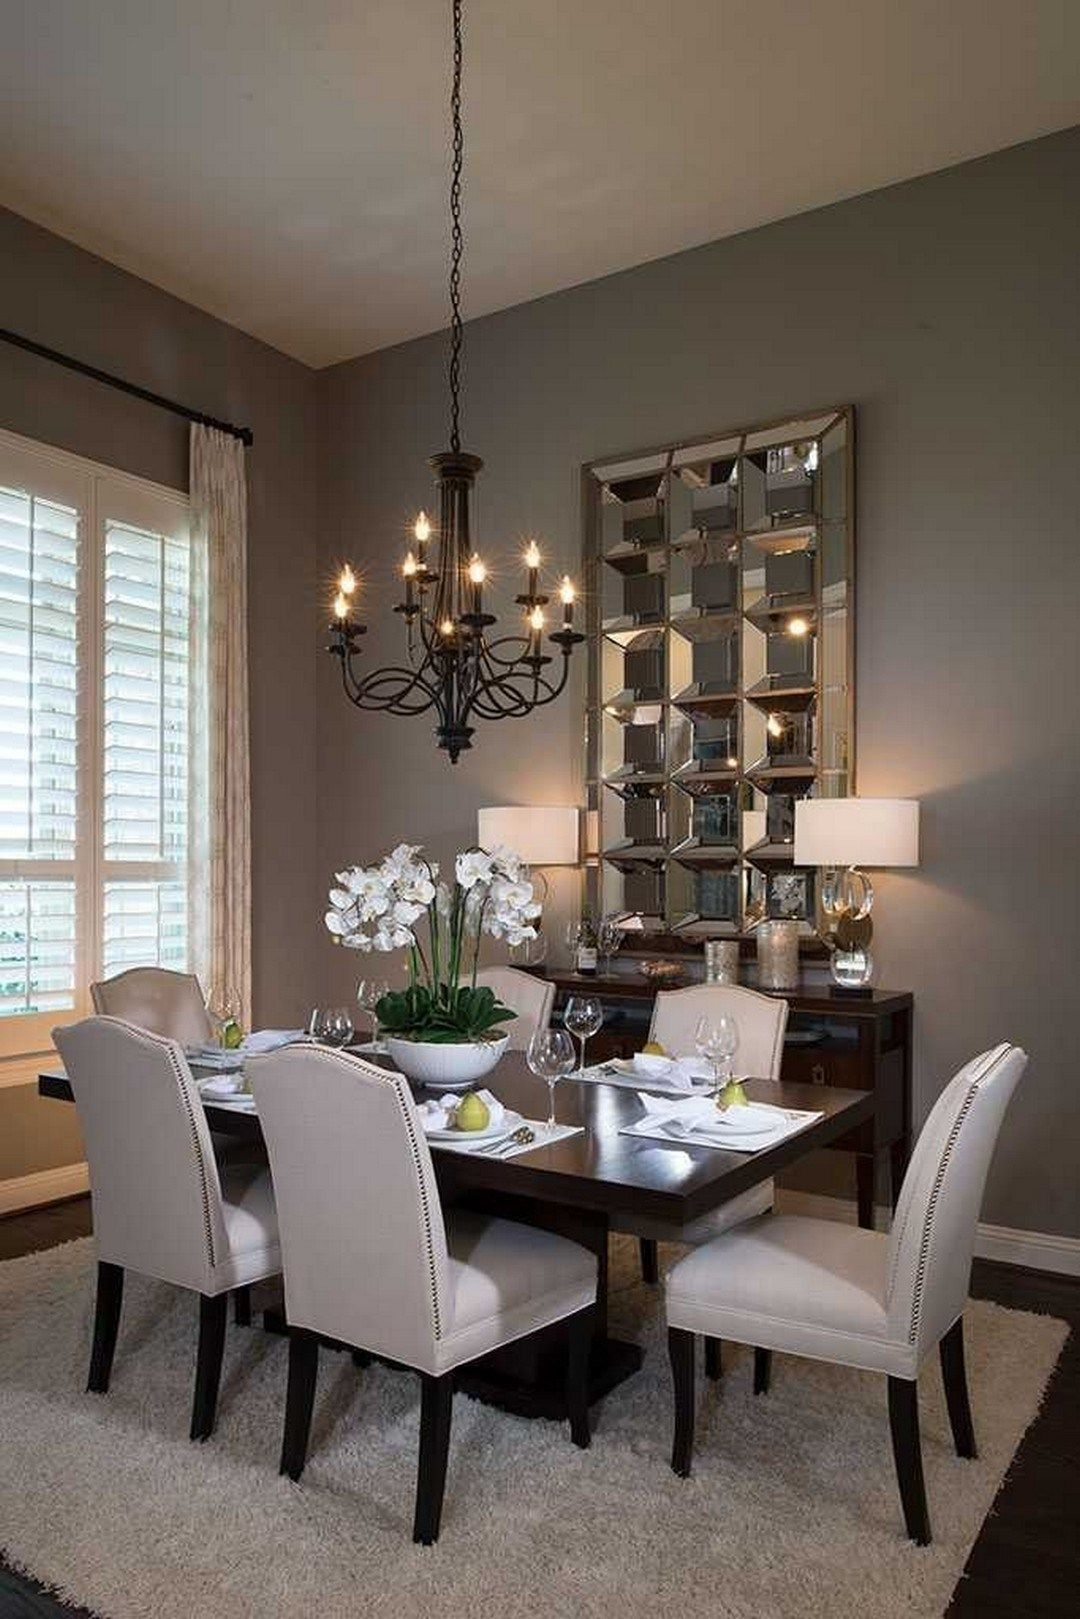 20 Dining Room with Buffet Lamps and Vertical Leaning ... on Living Room Wall Sconce Ideas For Dining Area id=49009